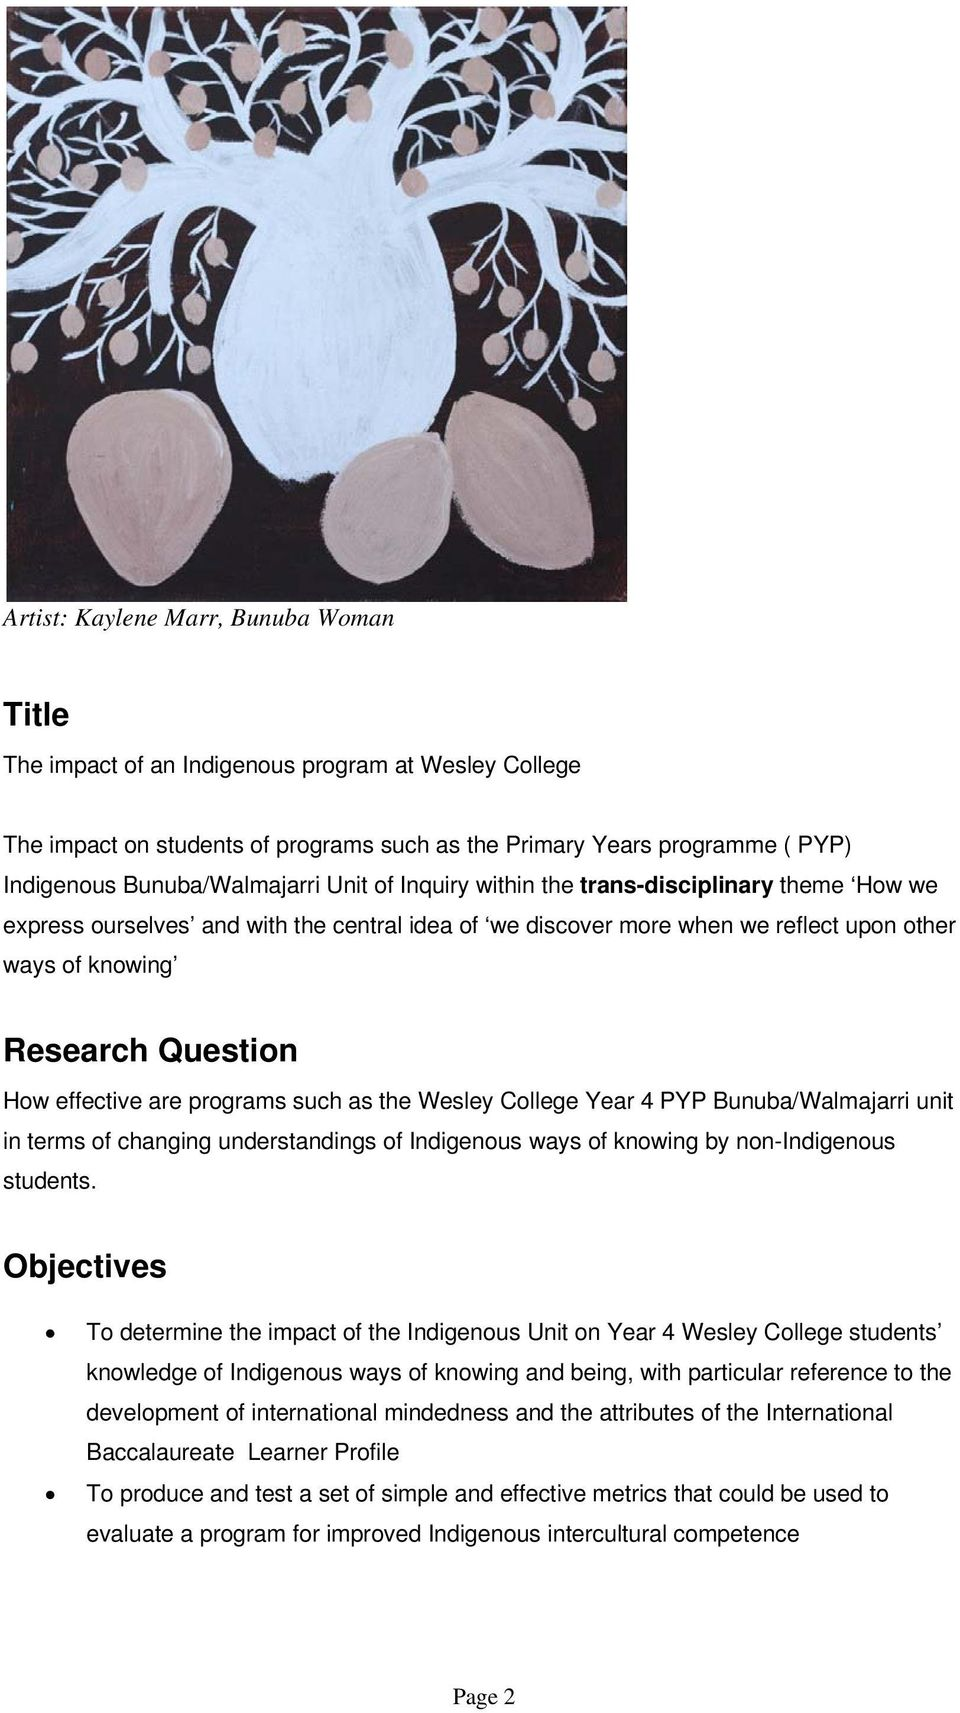 Question How effective are programs such as the Wesley College Year 4 PYP Bunuba/Walmajarri unit in terms of changing understandings of Indigenous ways of knowing by non-indigenous students.